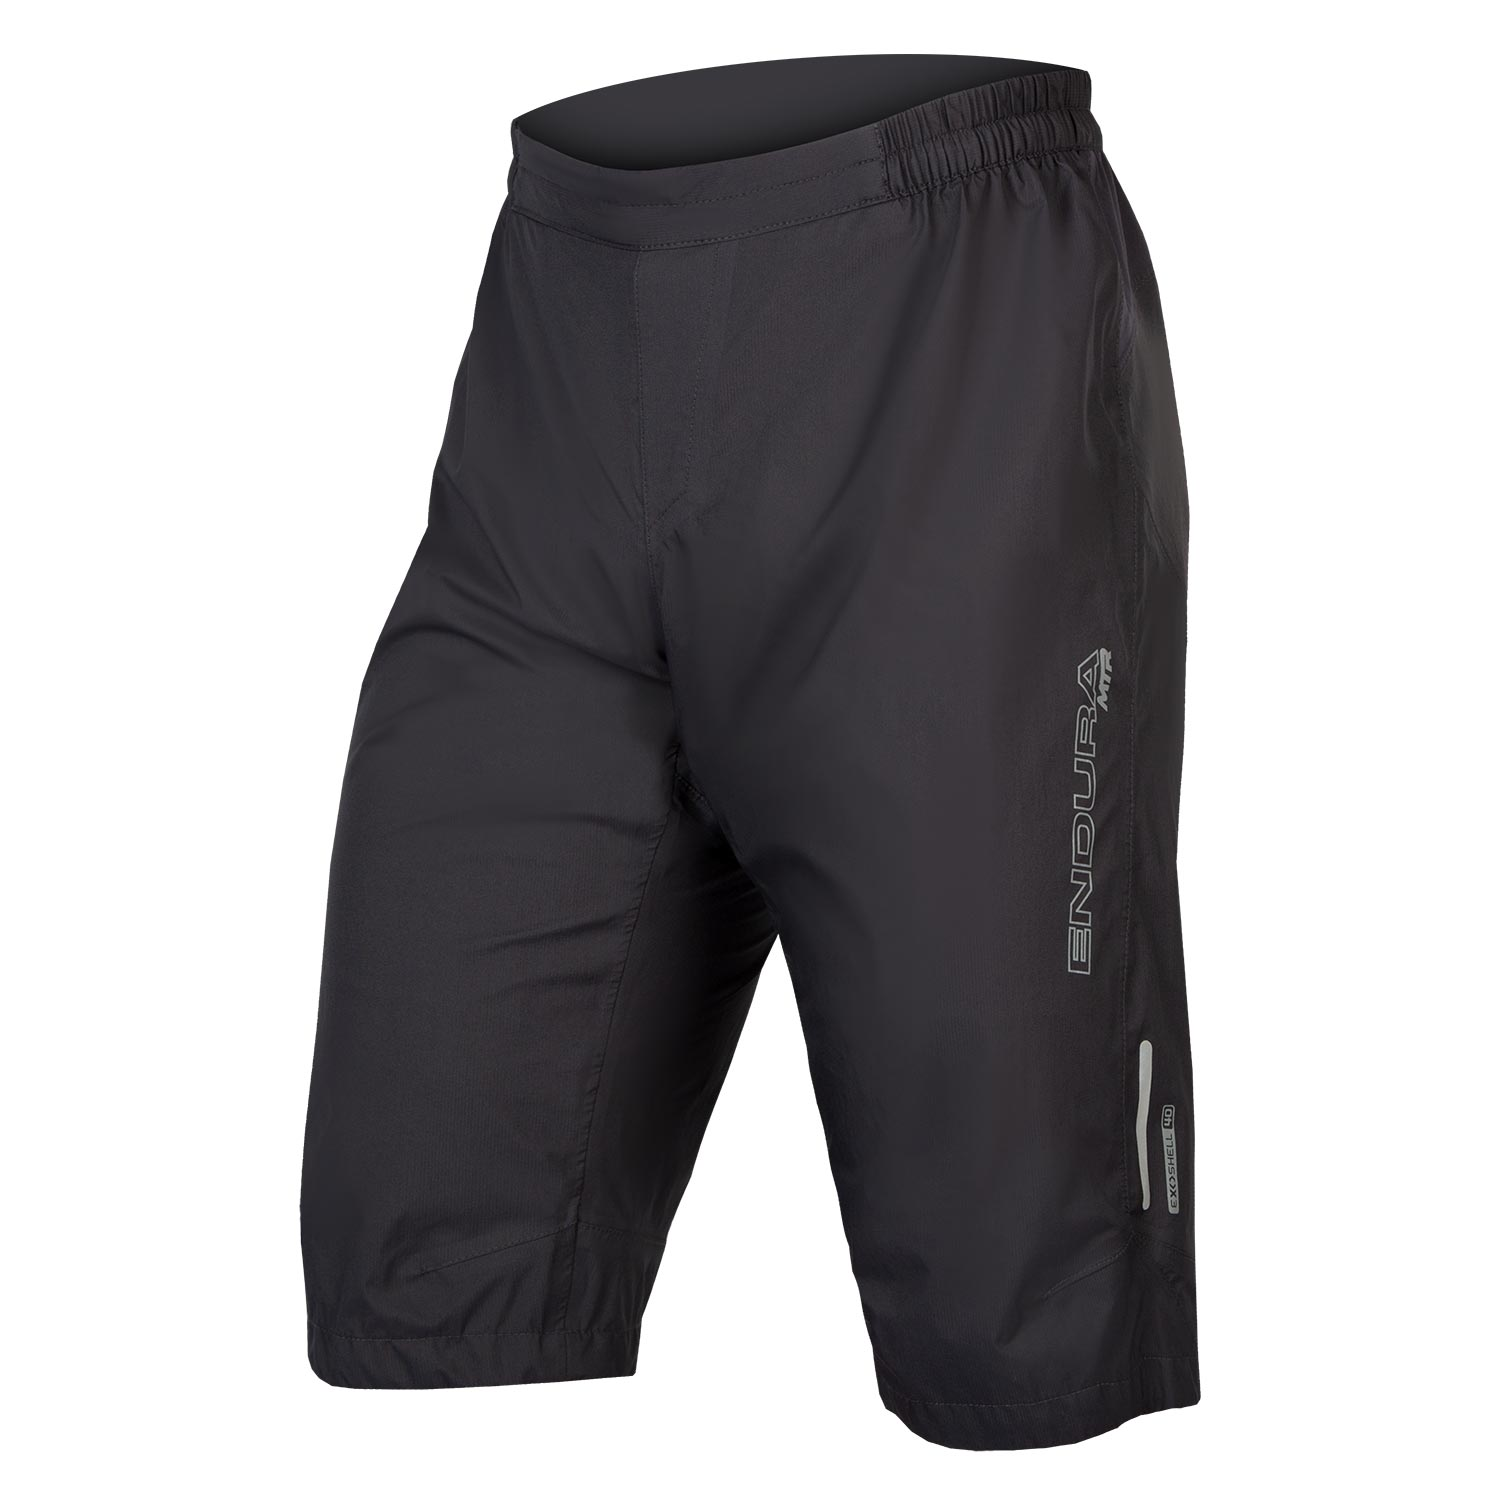 MTR Waterproof Short front